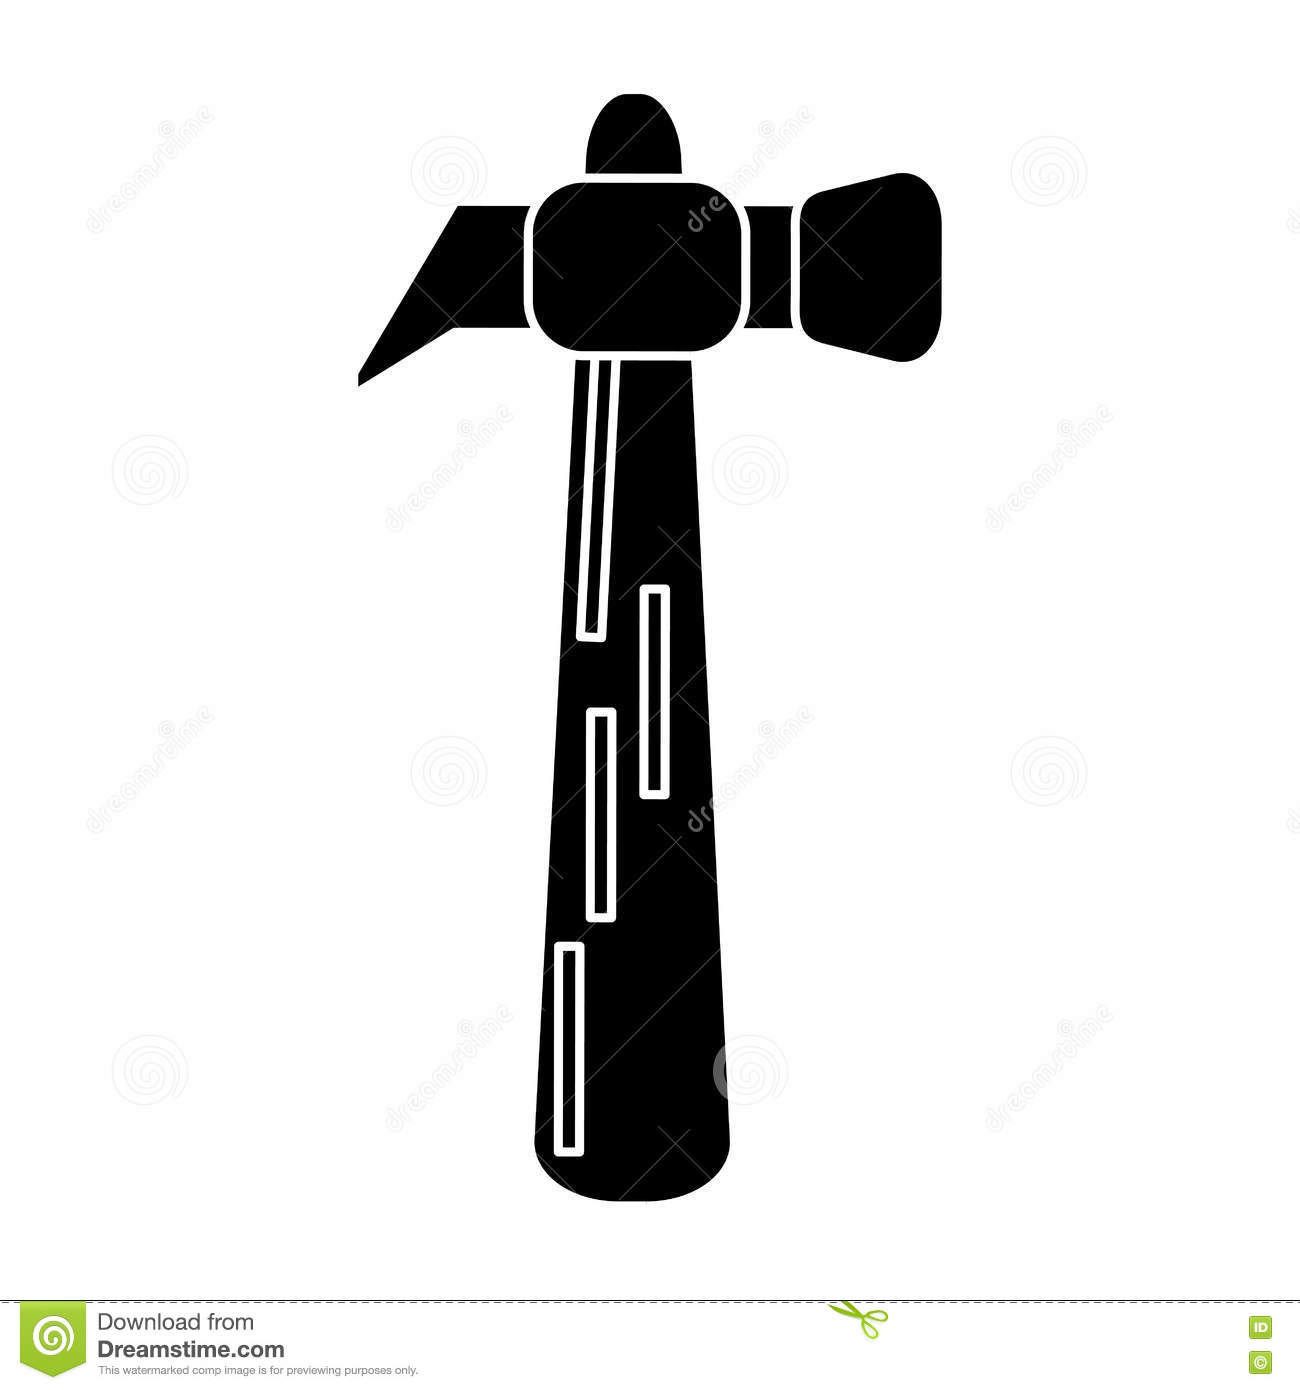 Hammer Tool Steel Wooden Icon Pictogram Stock Illustration.